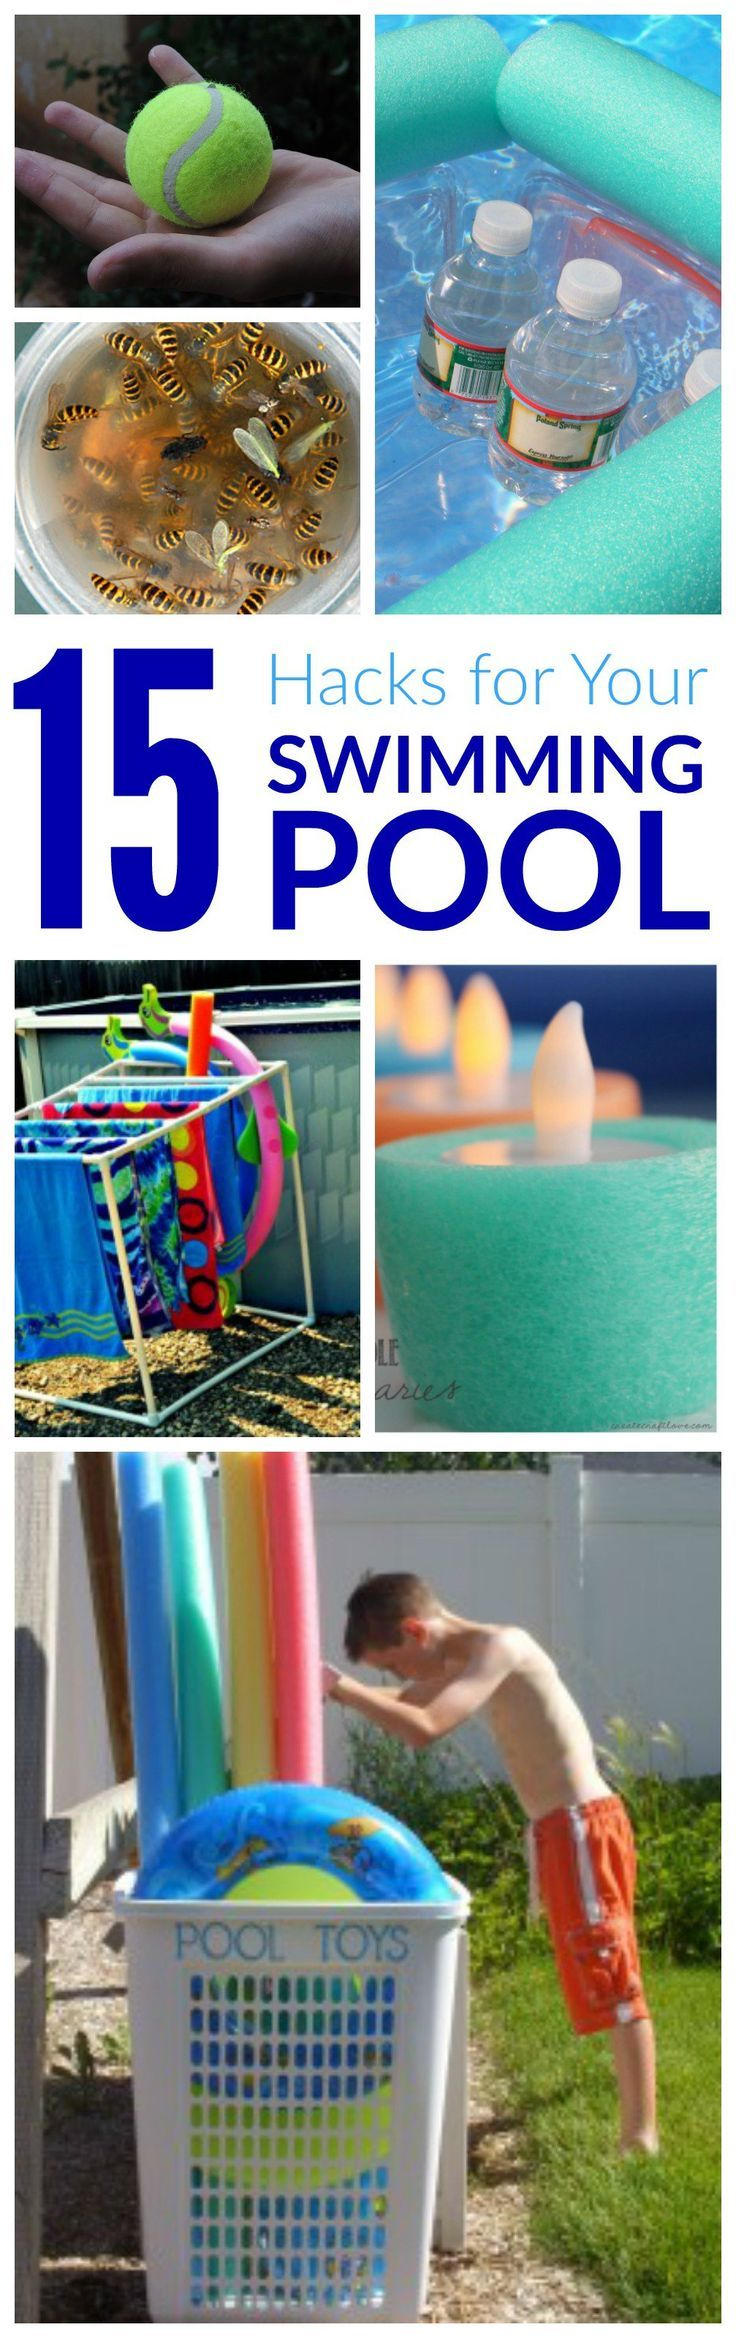 15 Swimming Pool Hacks for Summer! Summertime Activities and Ideas for Kids!